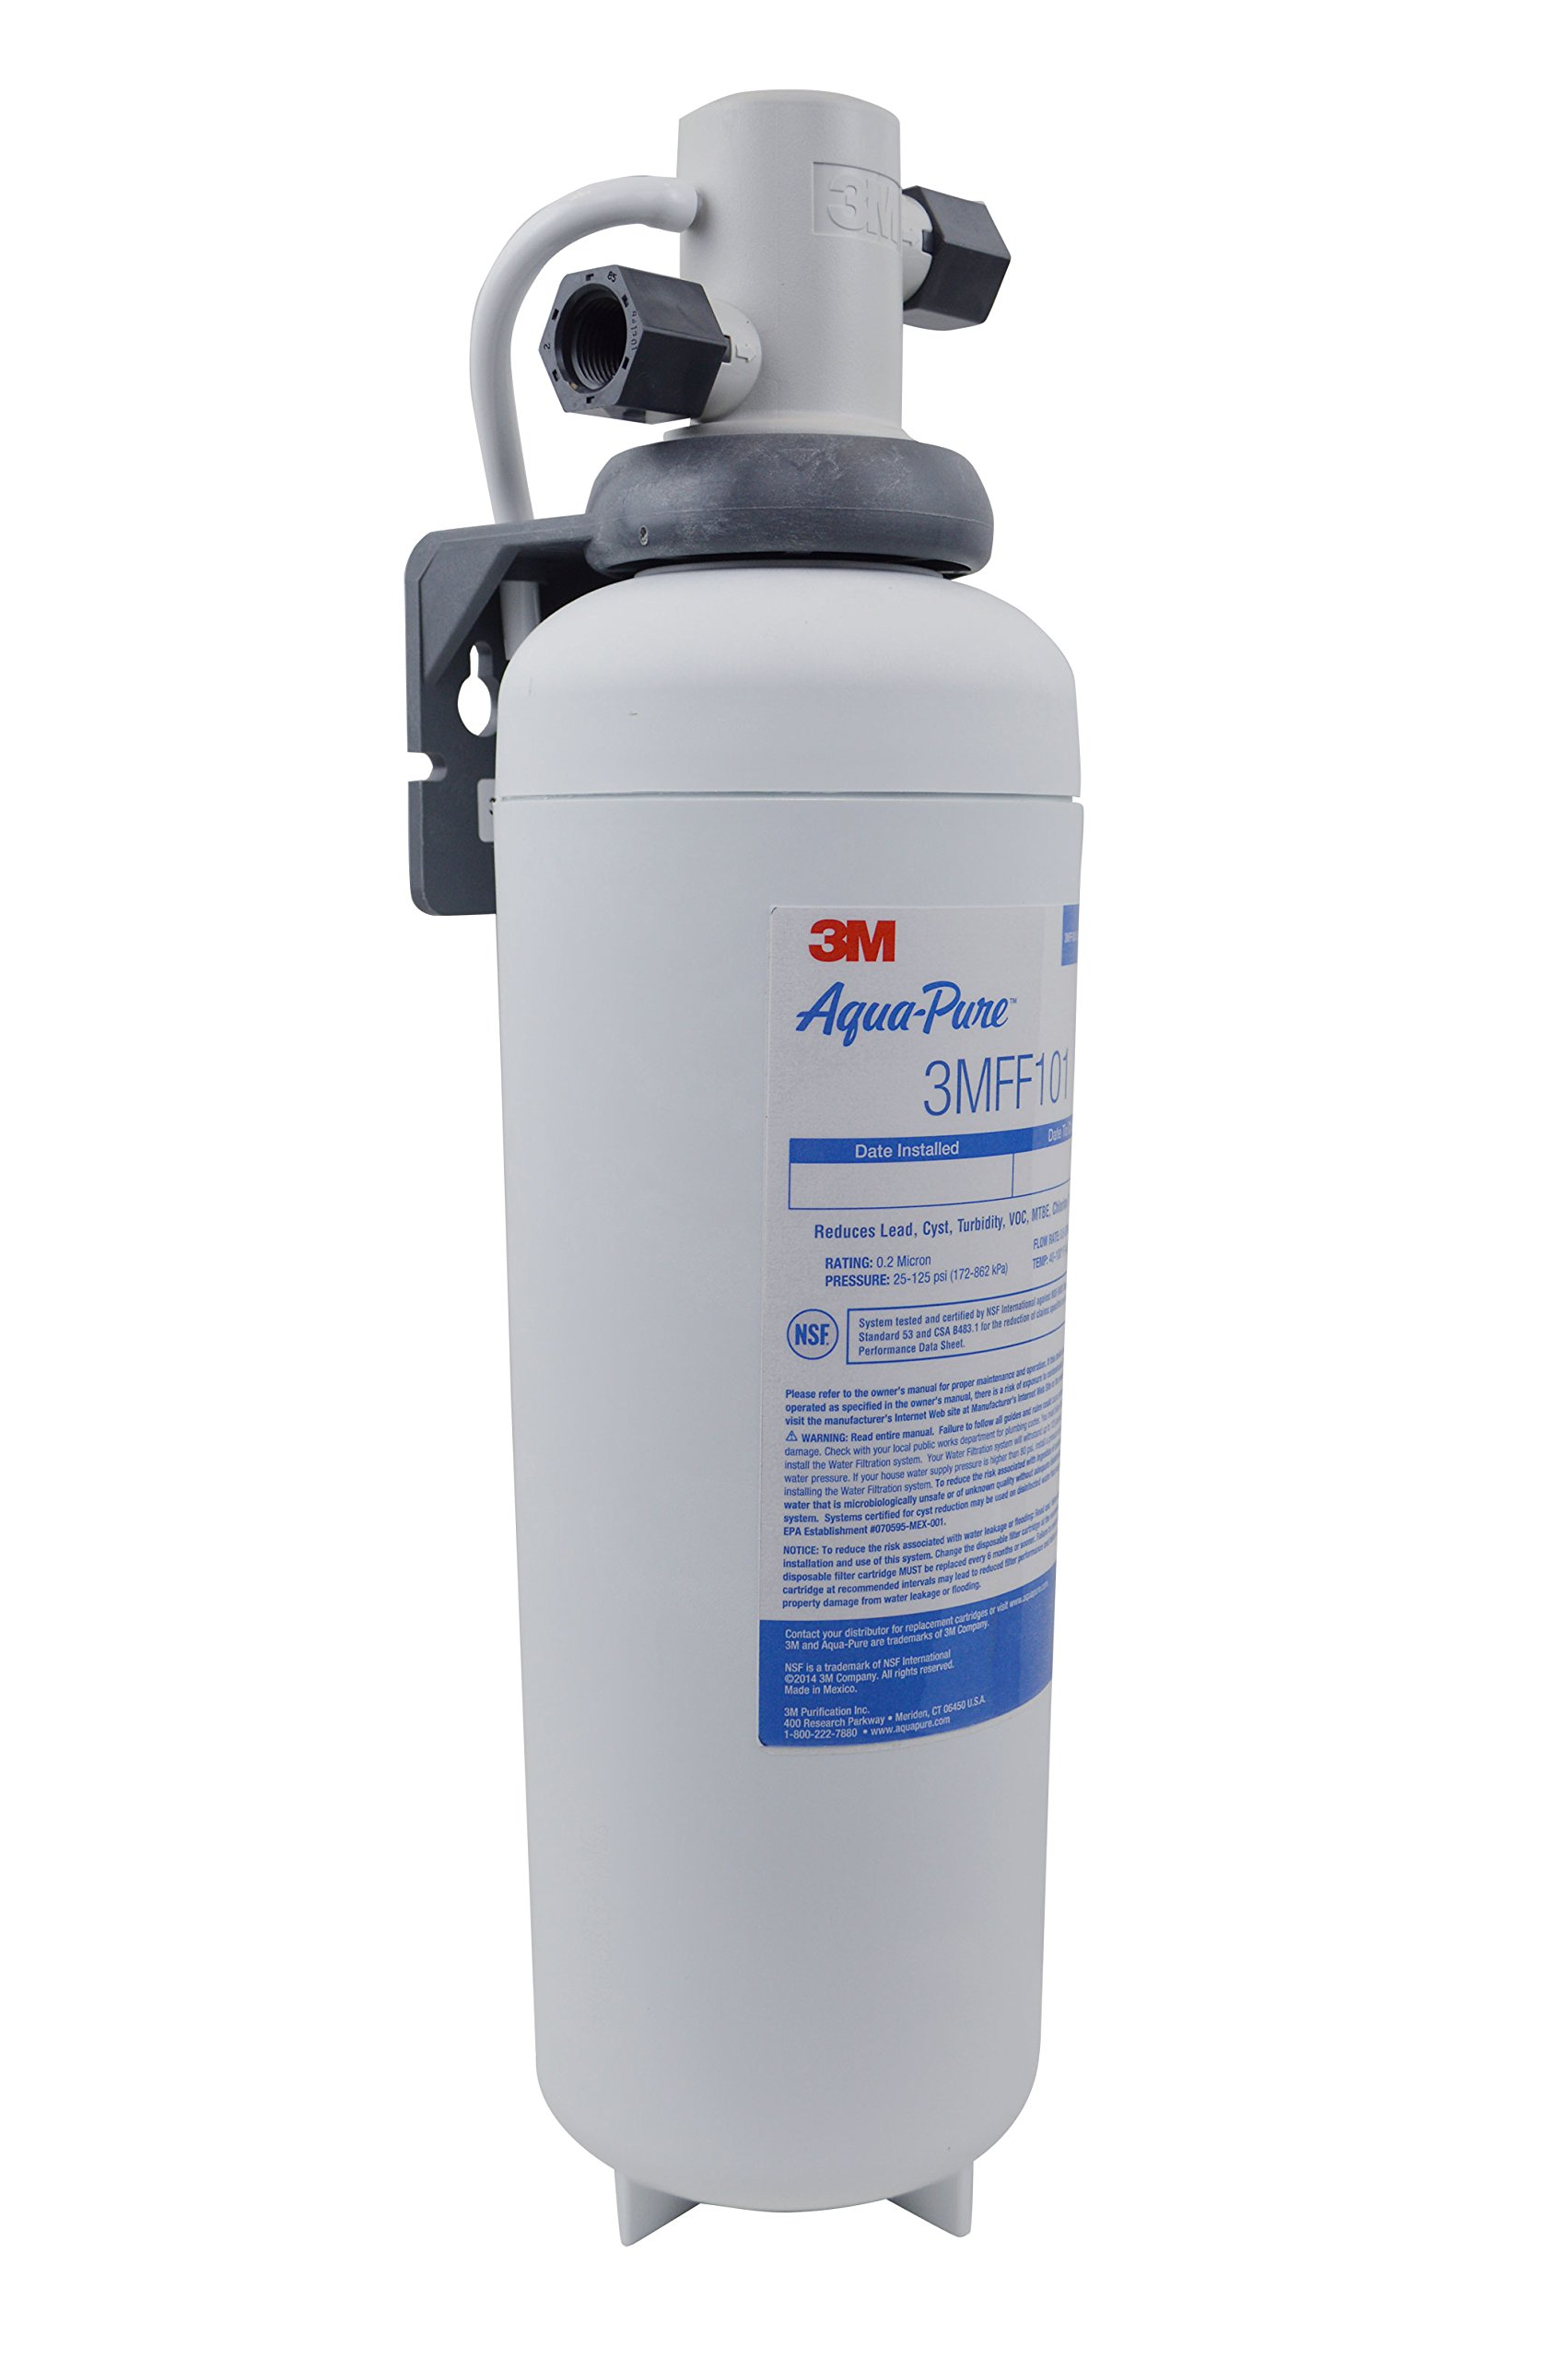 3M Aqua-Pure Under Sink Full Flow Drinking Water Filter System 3MFF100, Sanitary Quick Change, Reduces Particulates, Chlorine Taste and Odor, Cysts, Lead, Select VOCs by 3M Aqua-Pure